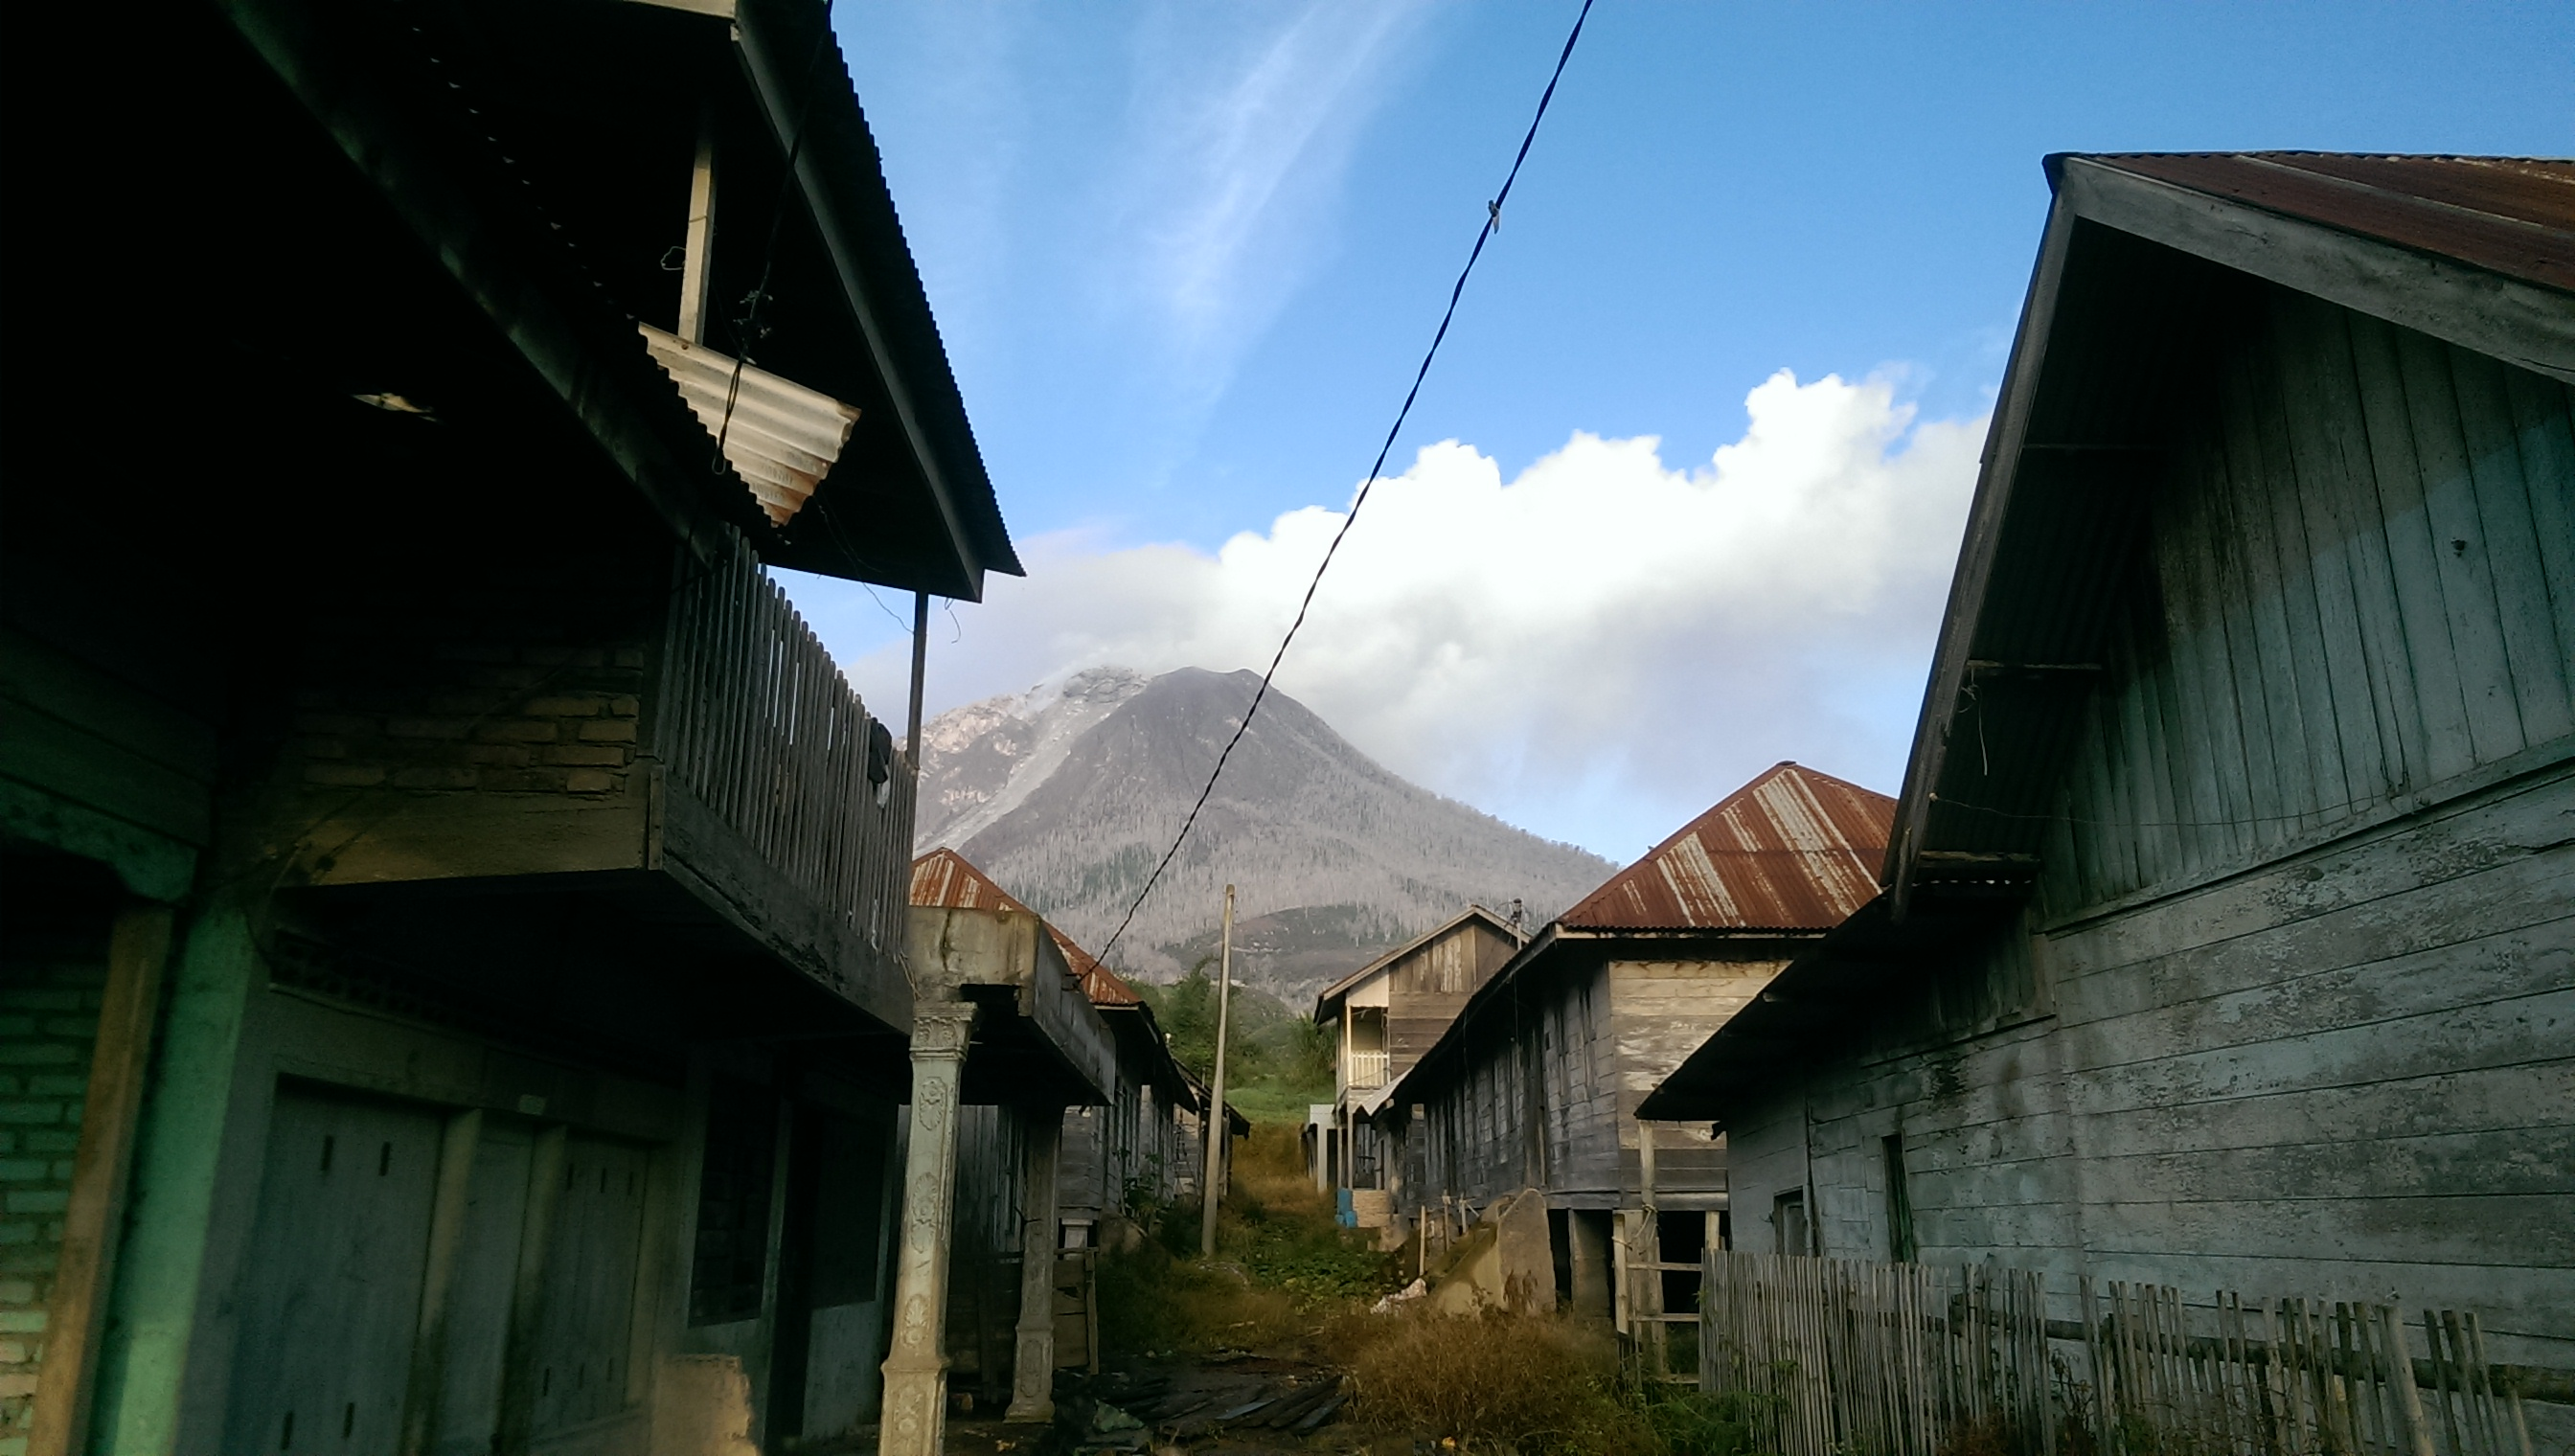 Sumatra volcano Sibayak Sinabung solo female travel Indonesia